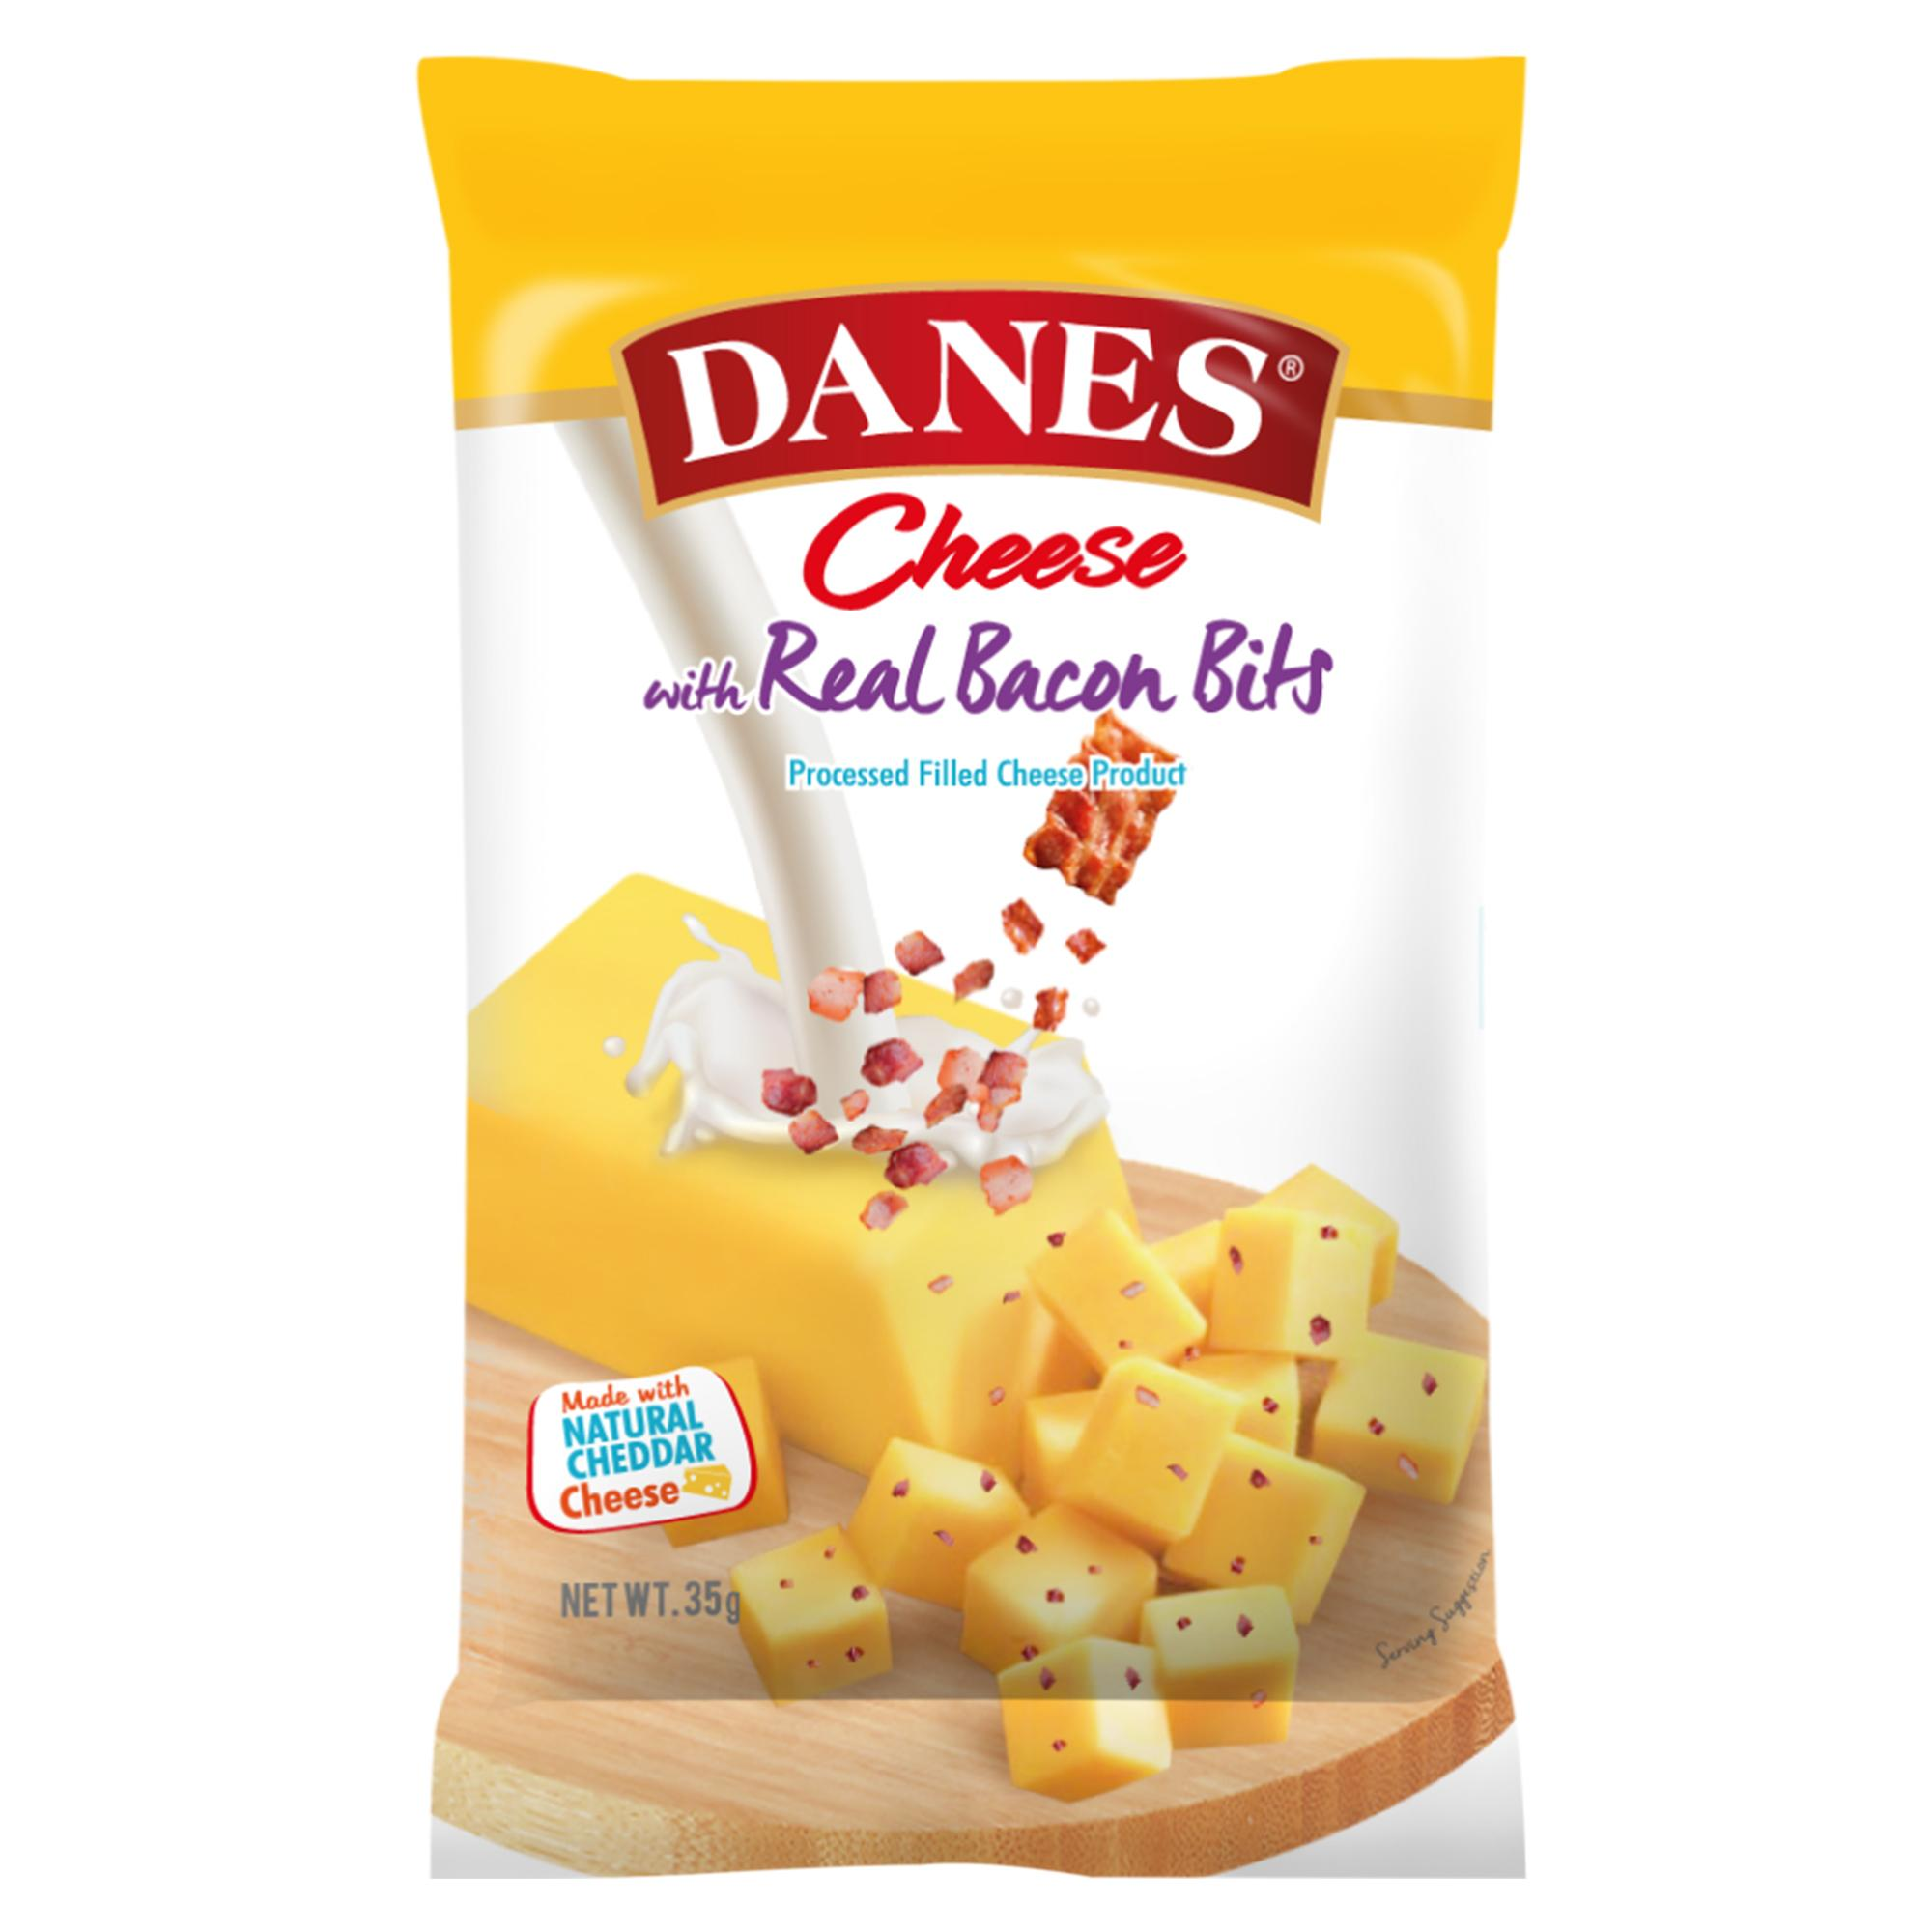 Buy Danes Top Products Online at Best Price | lazada.com.ph